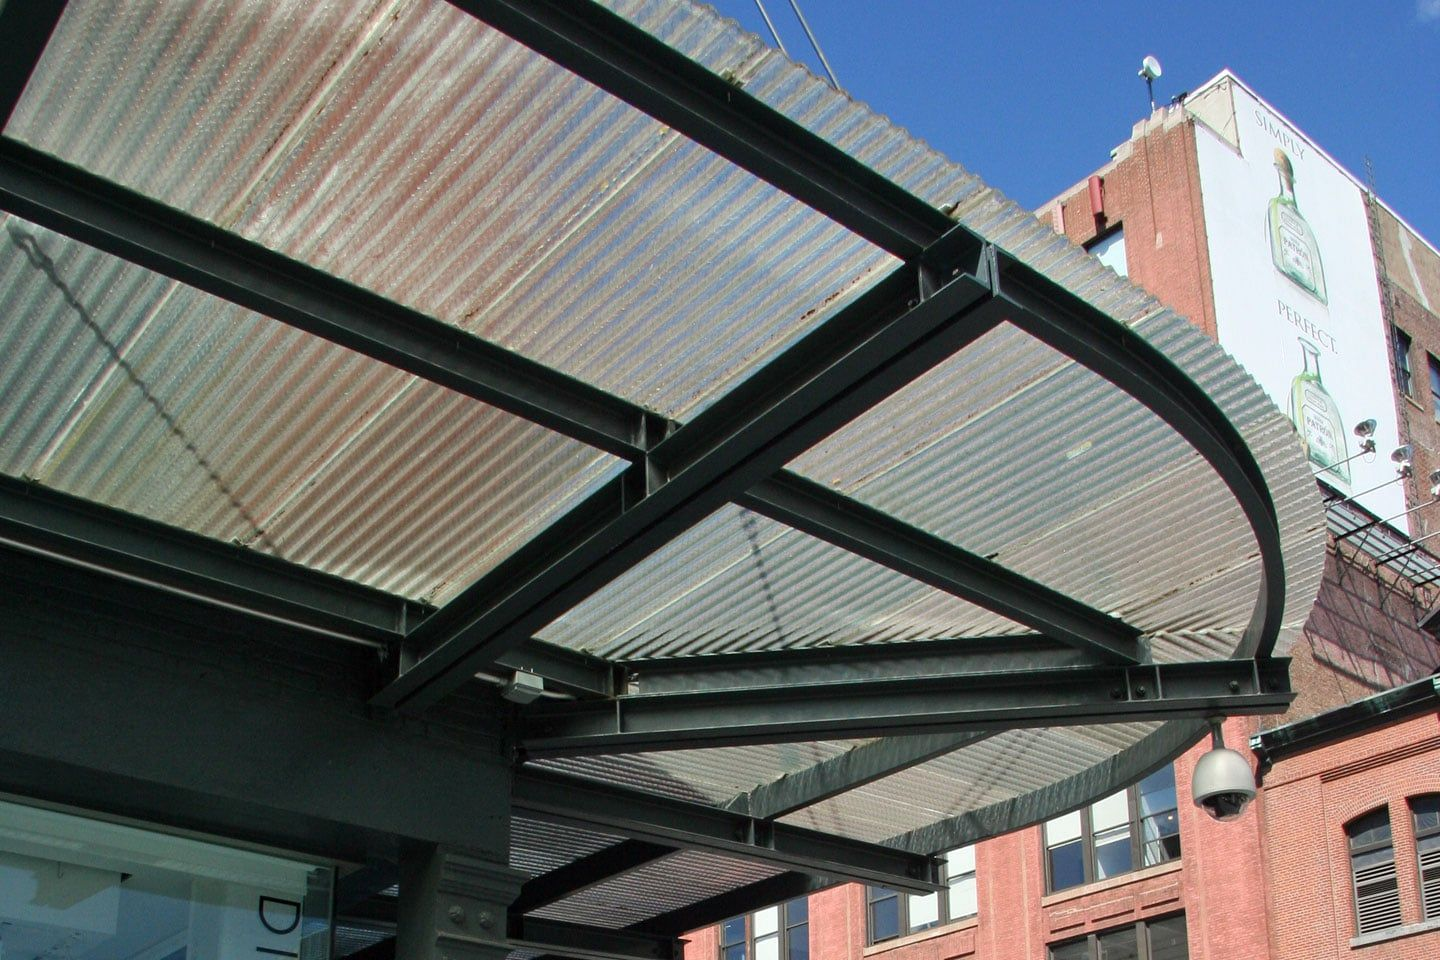 Nyc Apparel Showroom Clear Corrugated Chicken Wire Glass Canopy Canopy Architecture Skylight Wired Glass